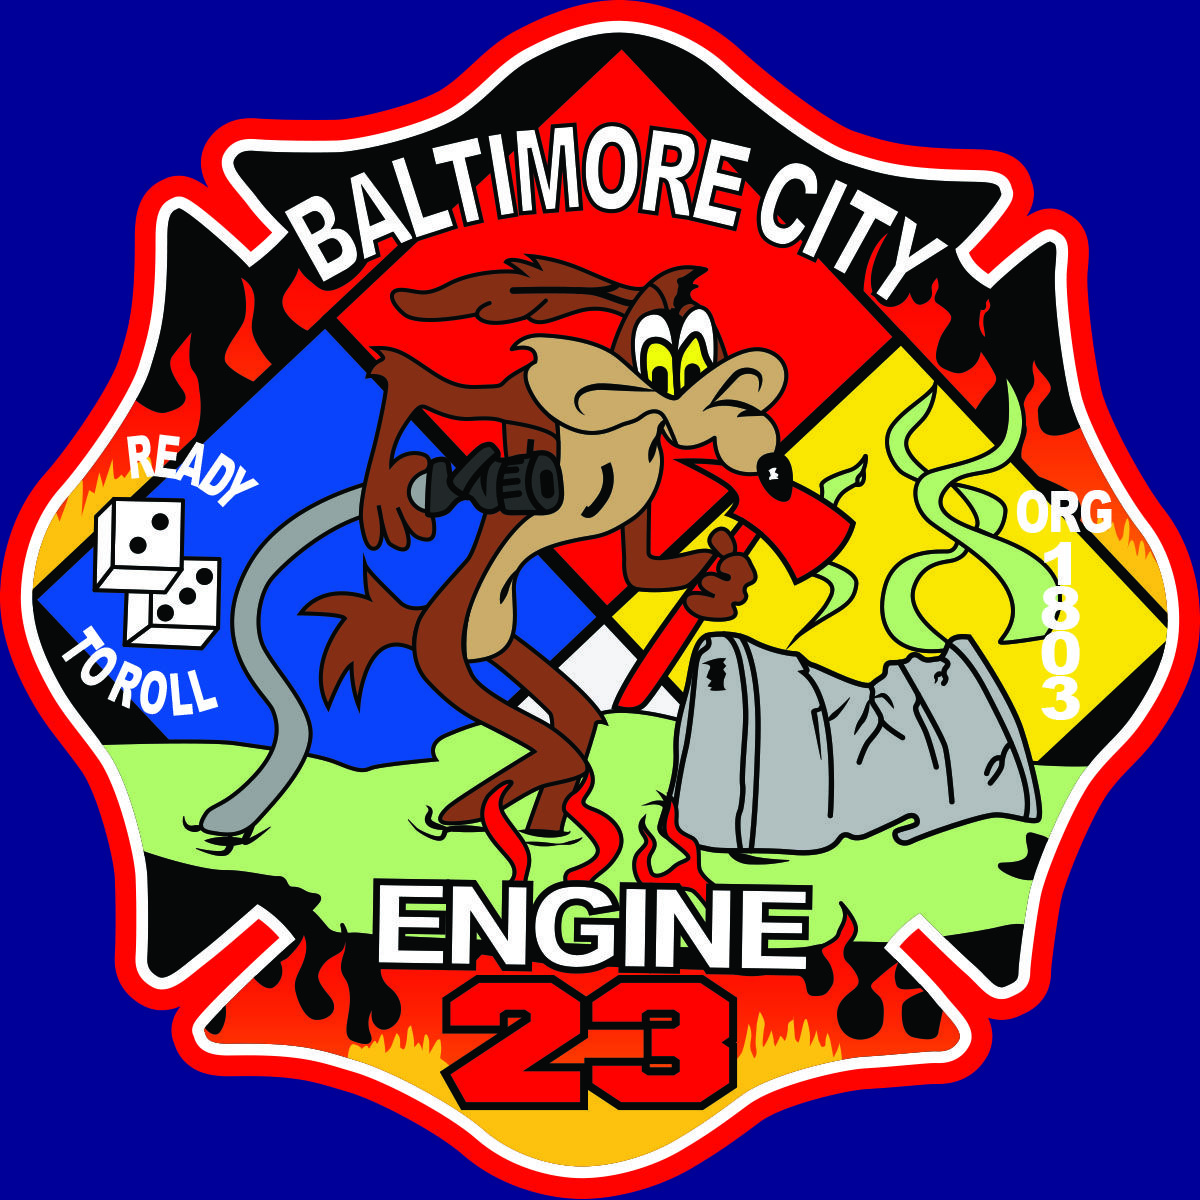 Baltimore City Engine 23 Coyote patch redrawn in vector